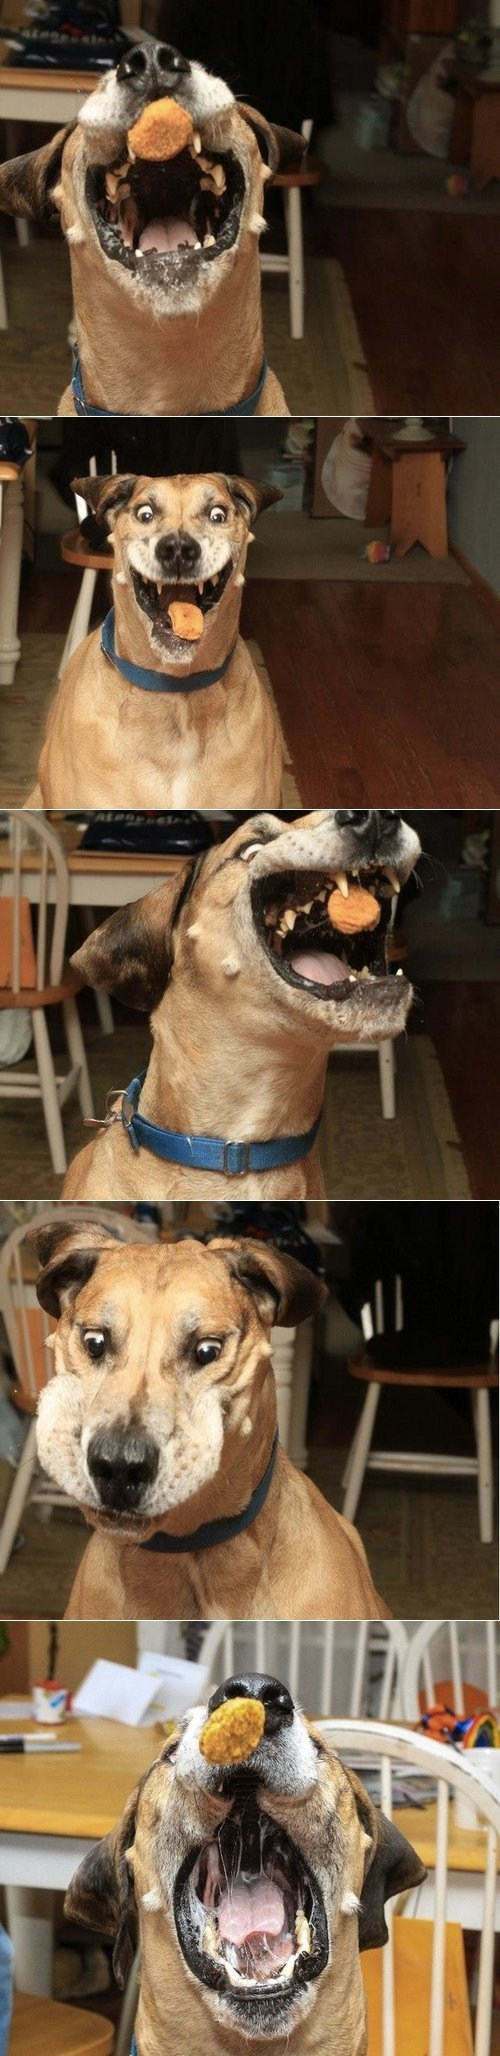 chicken nuggets,derp,dogs